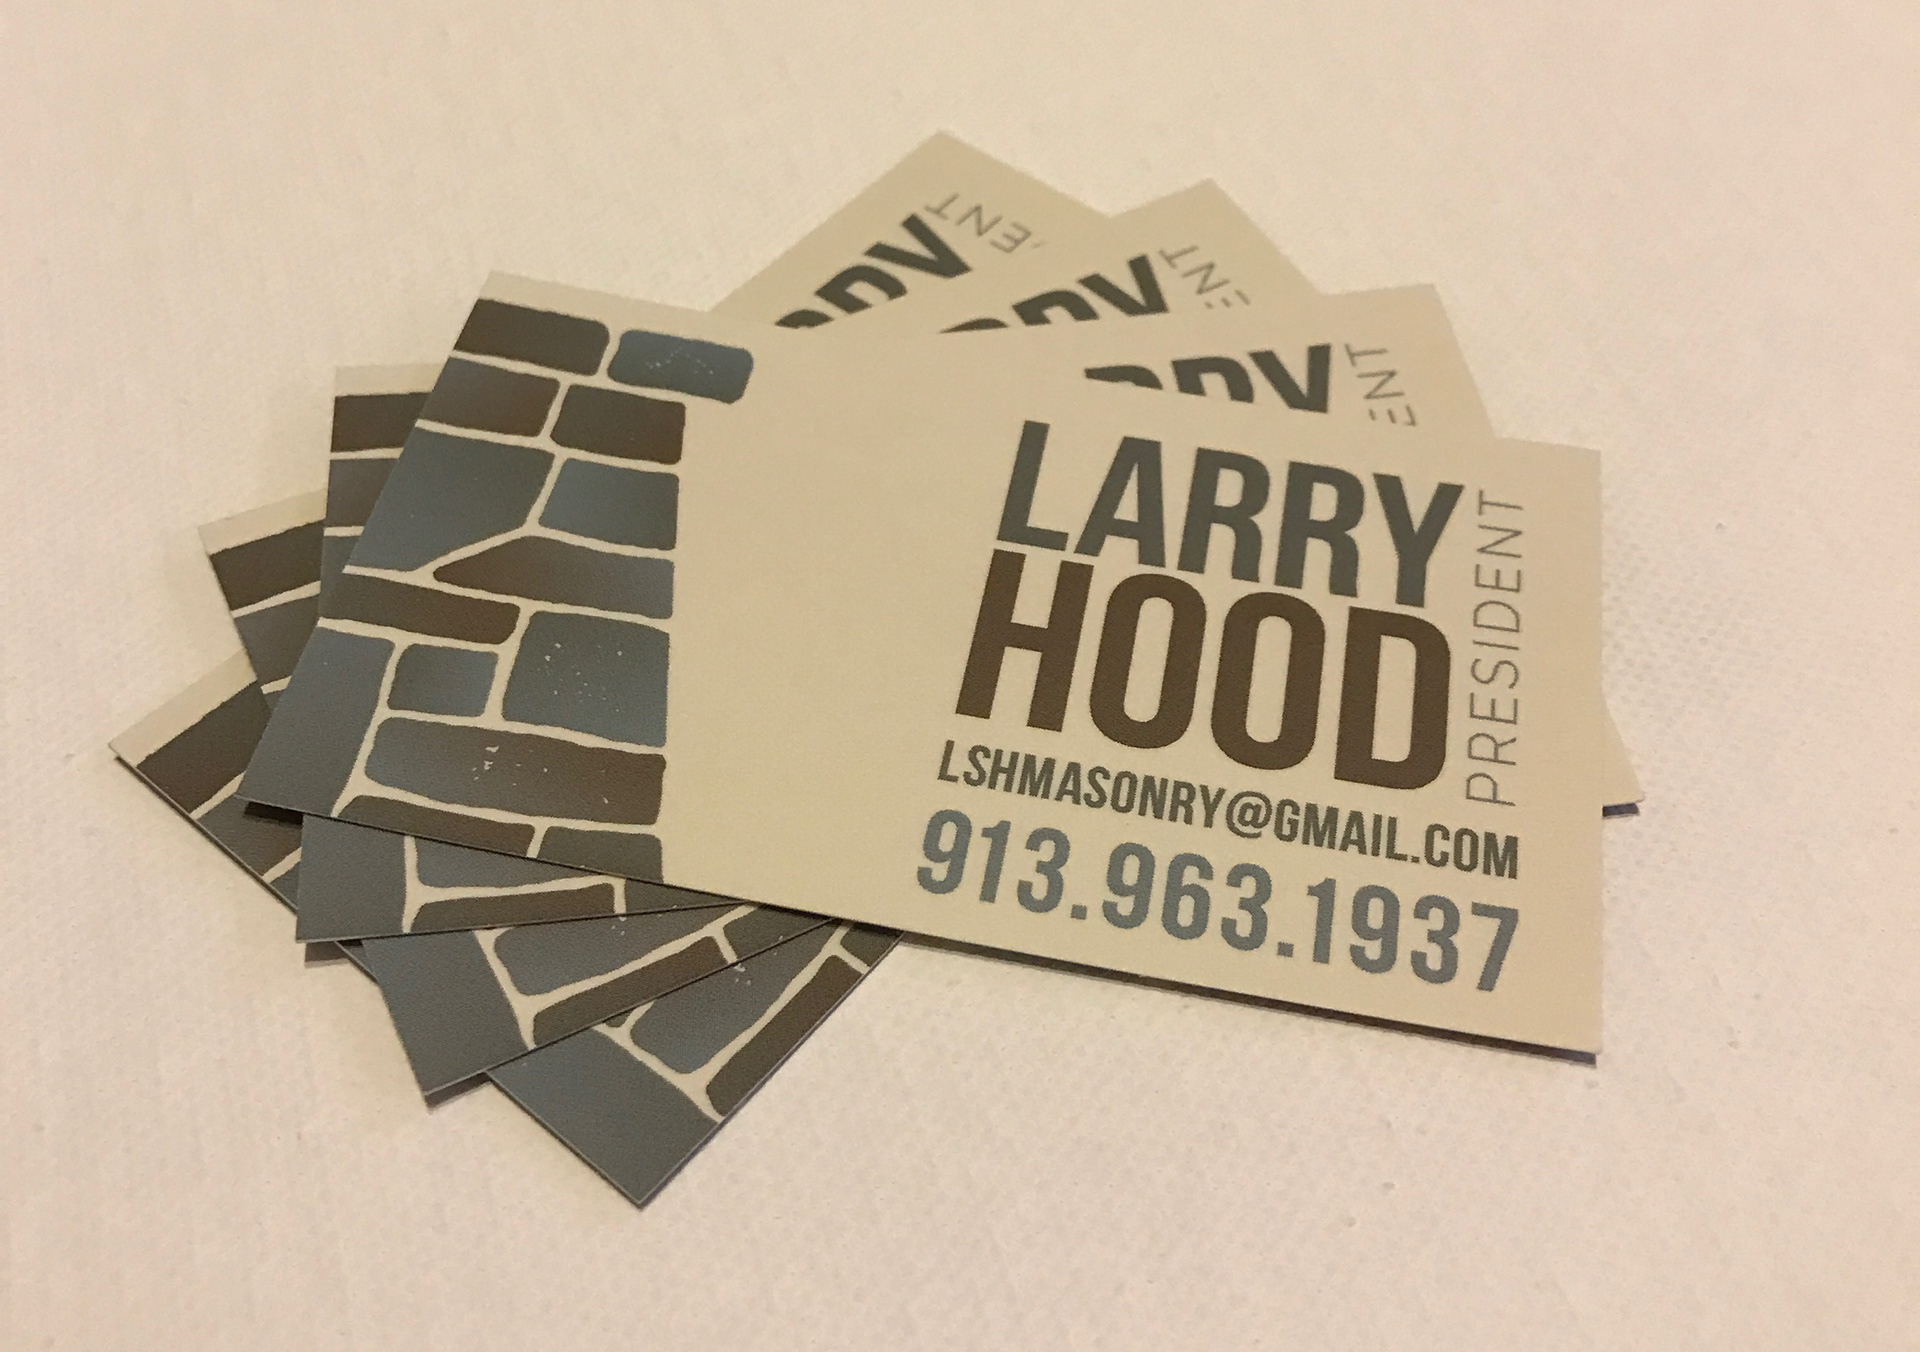 Christopher hickman lsh masonry business card in my opinion its difficult to make a construction look clean and professional but i think this was a great solution for a stone masonry company colourmoves